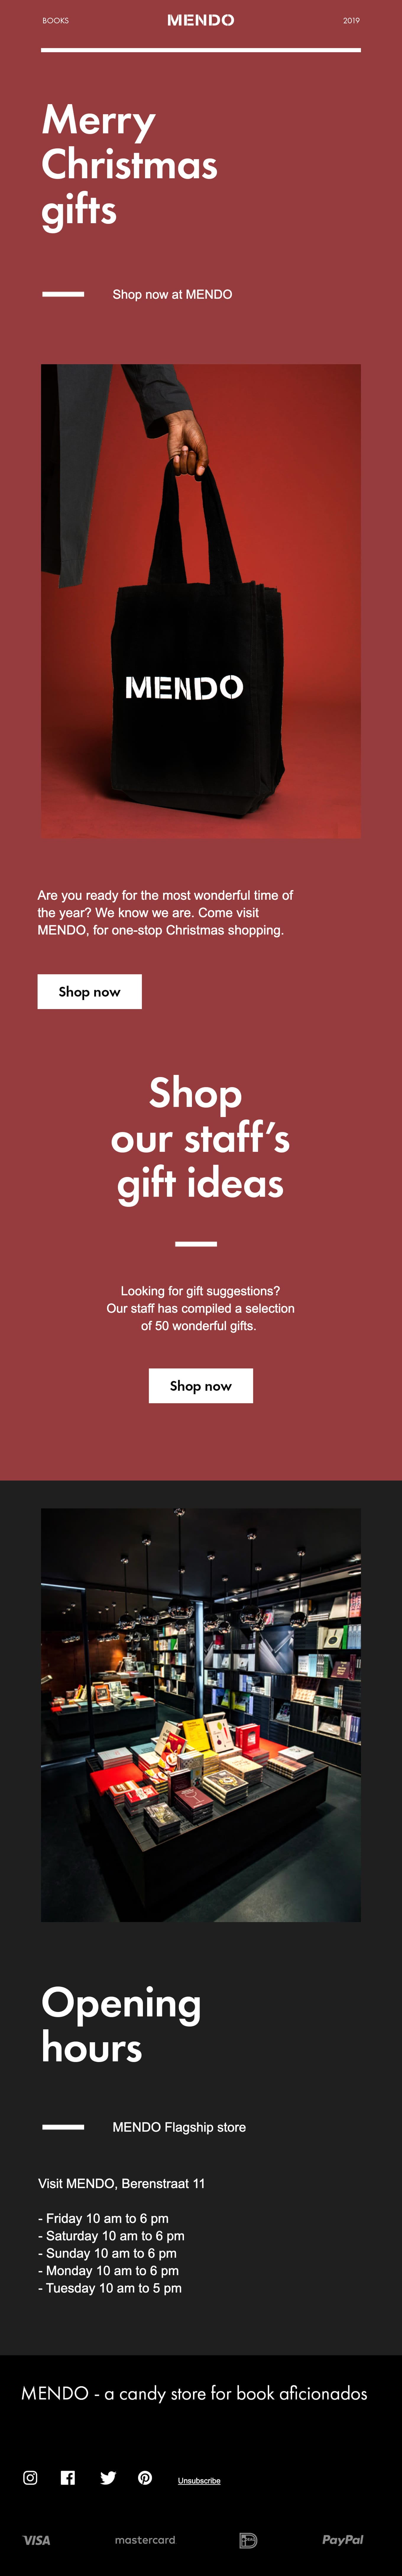 Last-minute Christmas gift ideas Email Screenshot